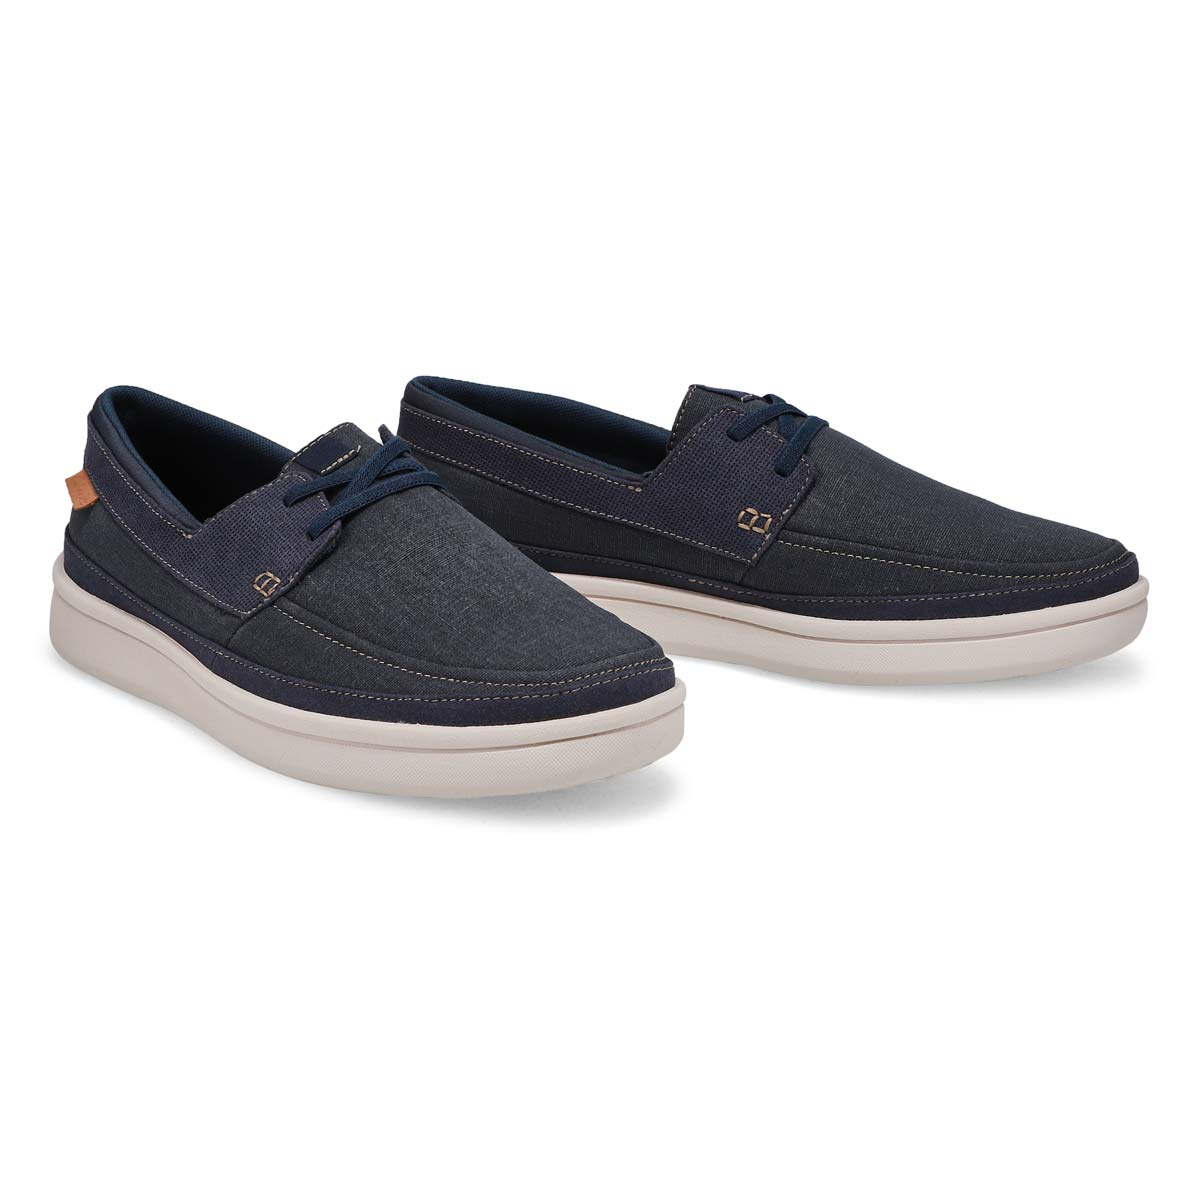 Chaussures CHANTAL LACE marine hommes